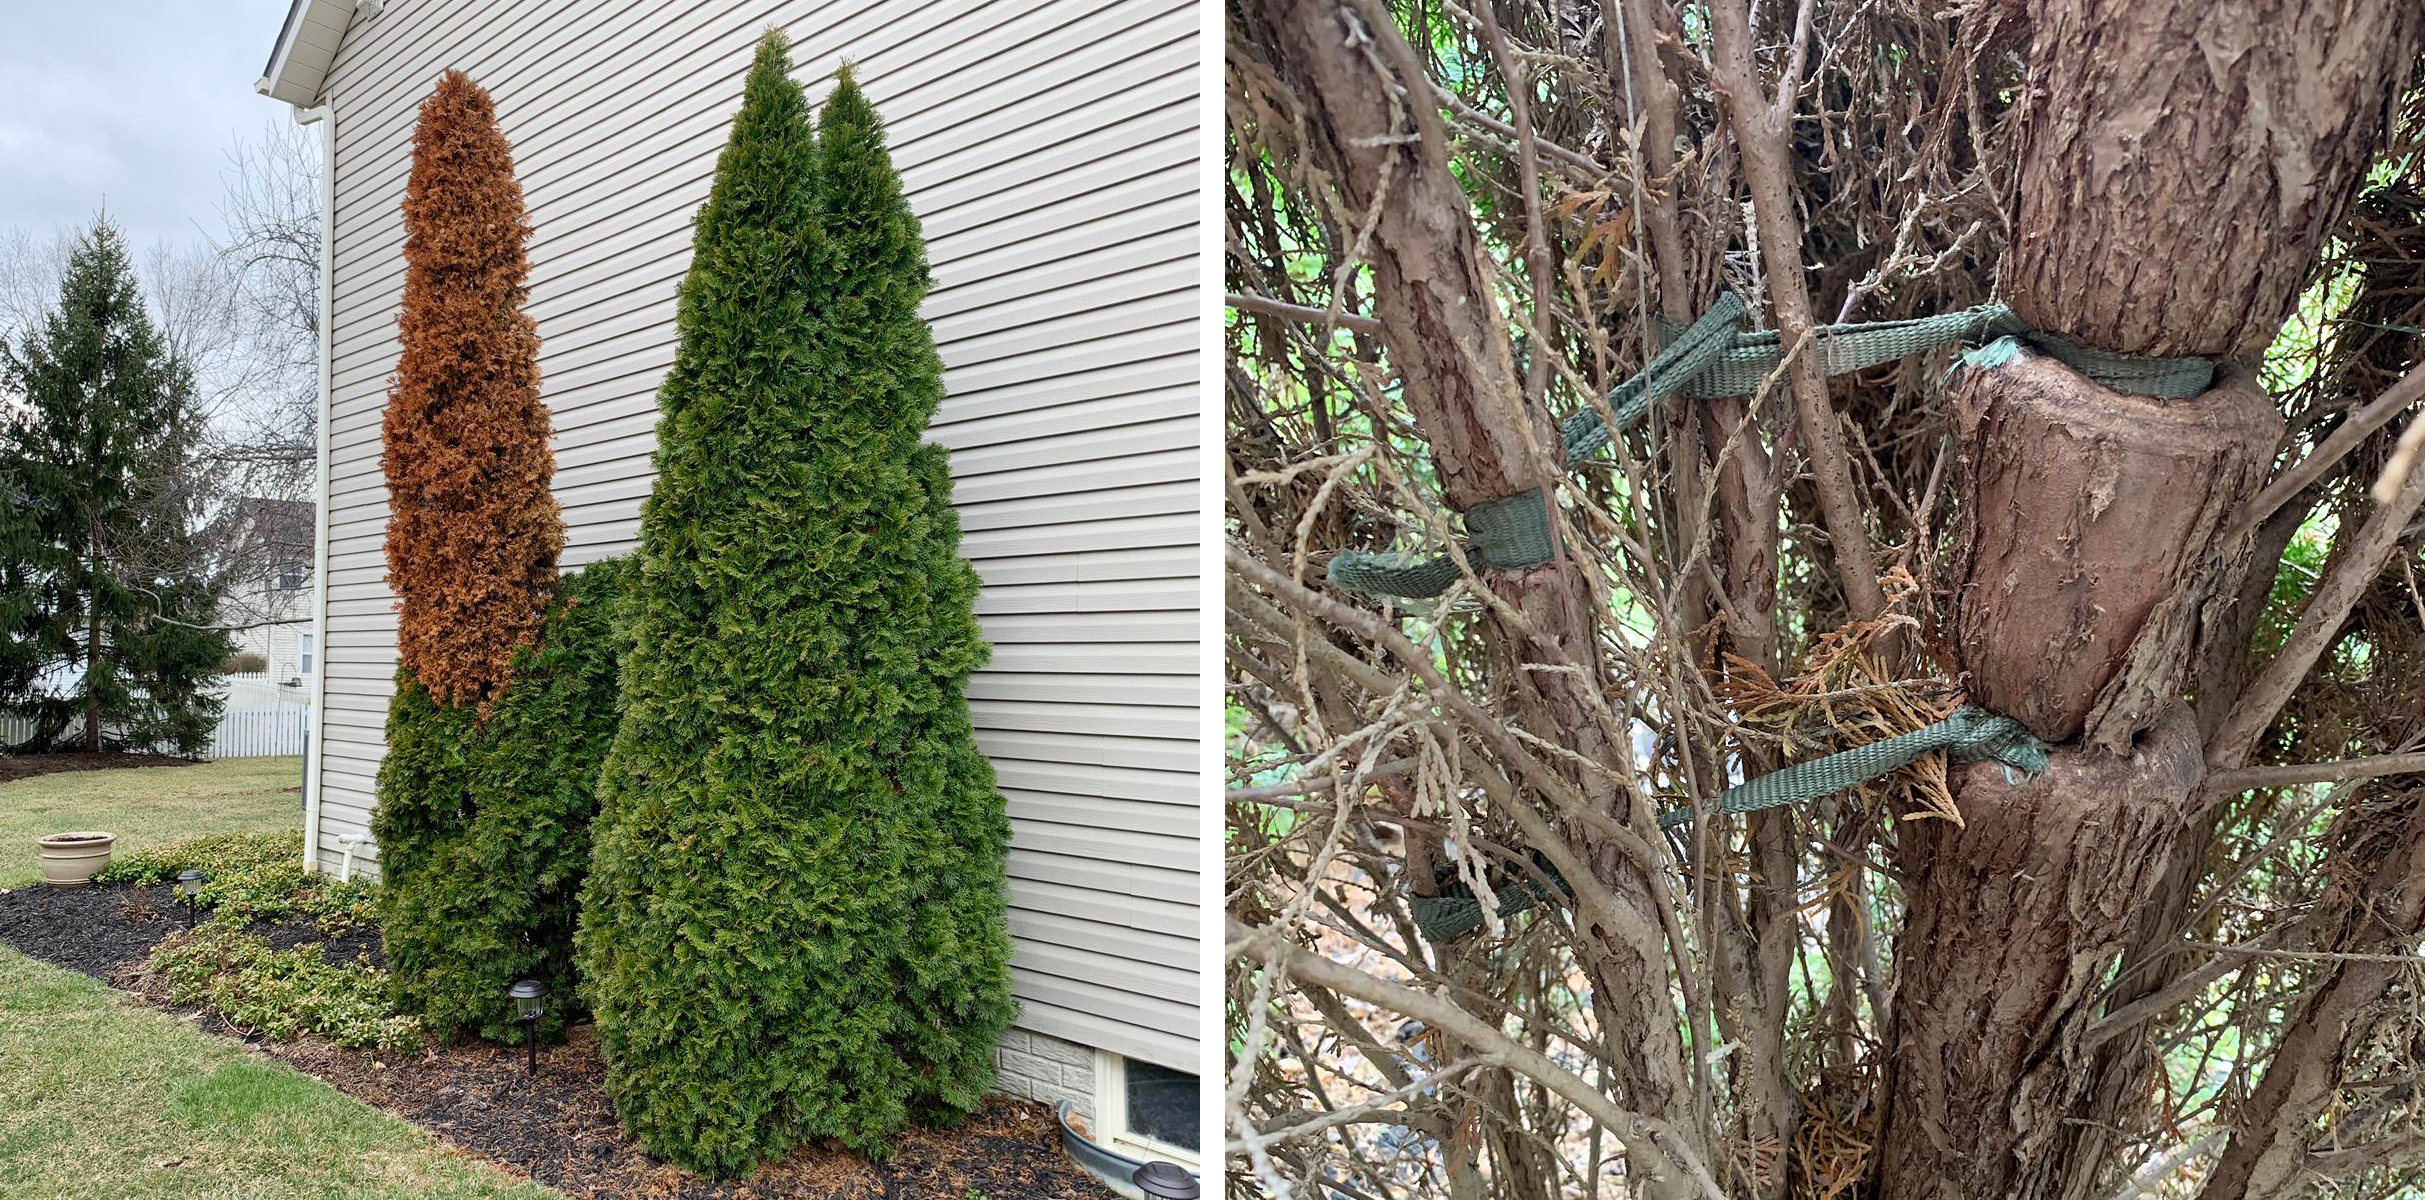 Pictured above is an Emerald Green Arborvitae that is being girdled by a fabric ribbon used to help promote proper growth of the tree when it was much younger.